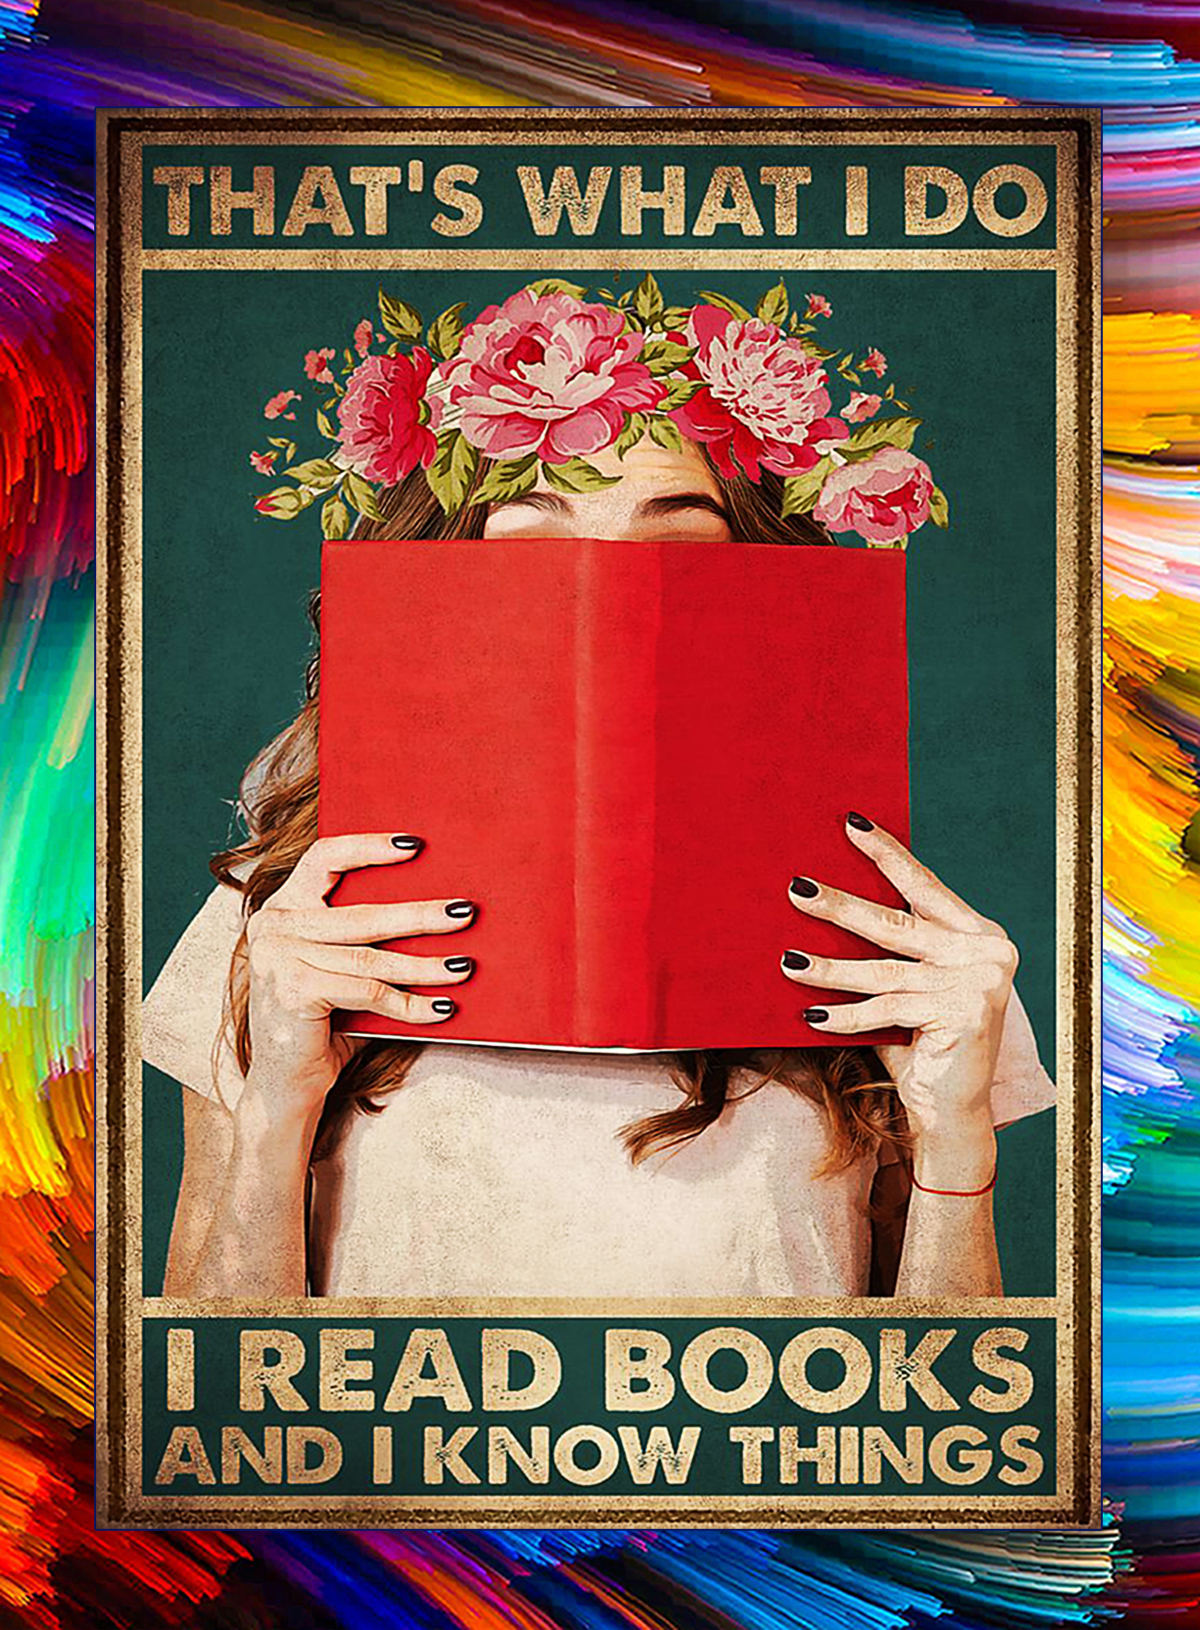 That's what i do i read book and i know things poster - A1